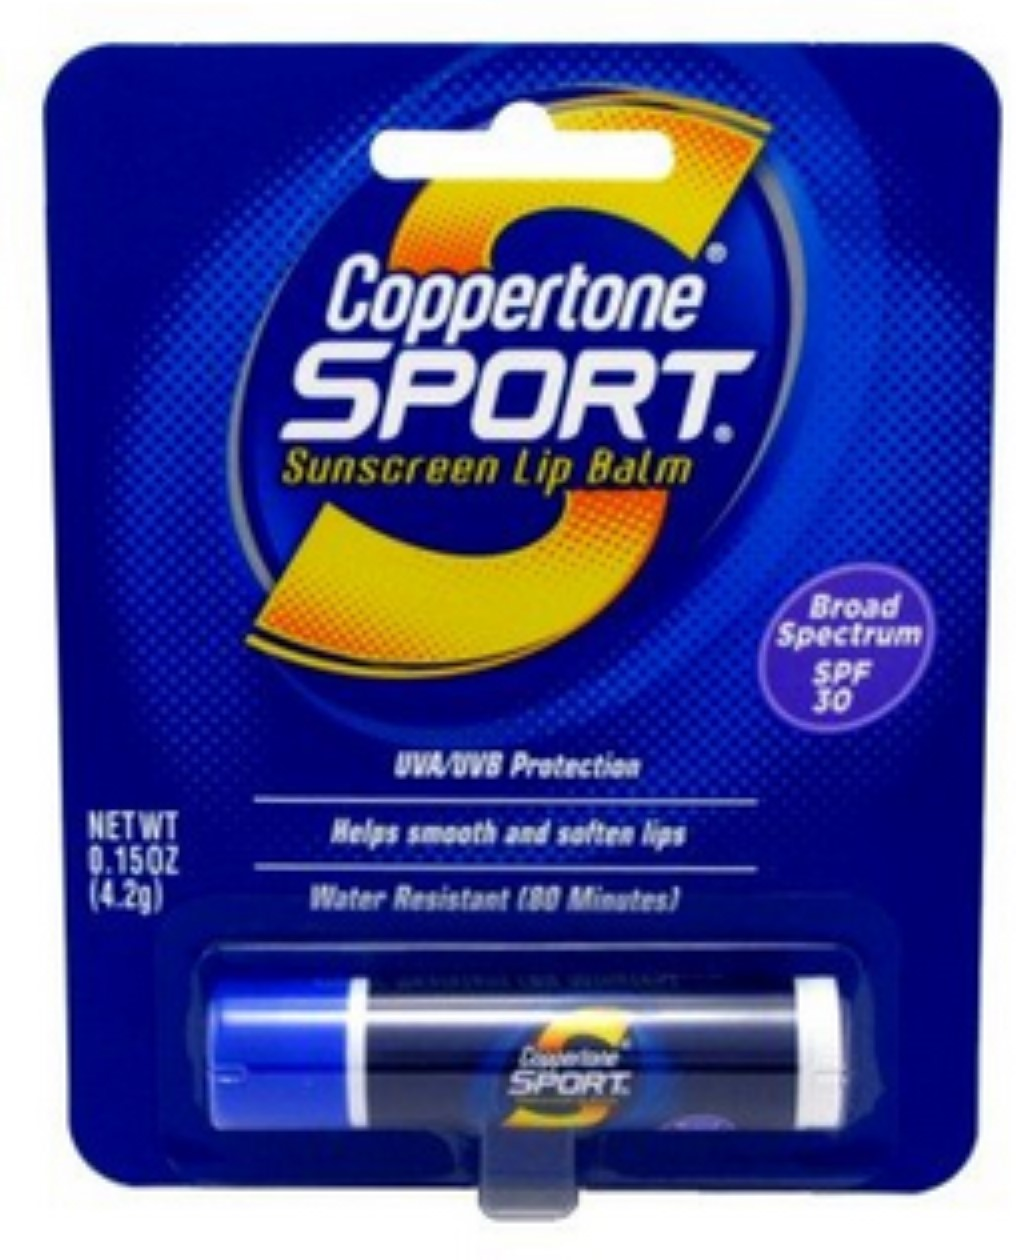 Coppertone Sport Sunscreen Lip Balm SPF 30 0.15 oz (Pack of 6) 6 Pack - Summers Eve Cleansing Cloth for Sensitive Skin, Island Splash 16 Each